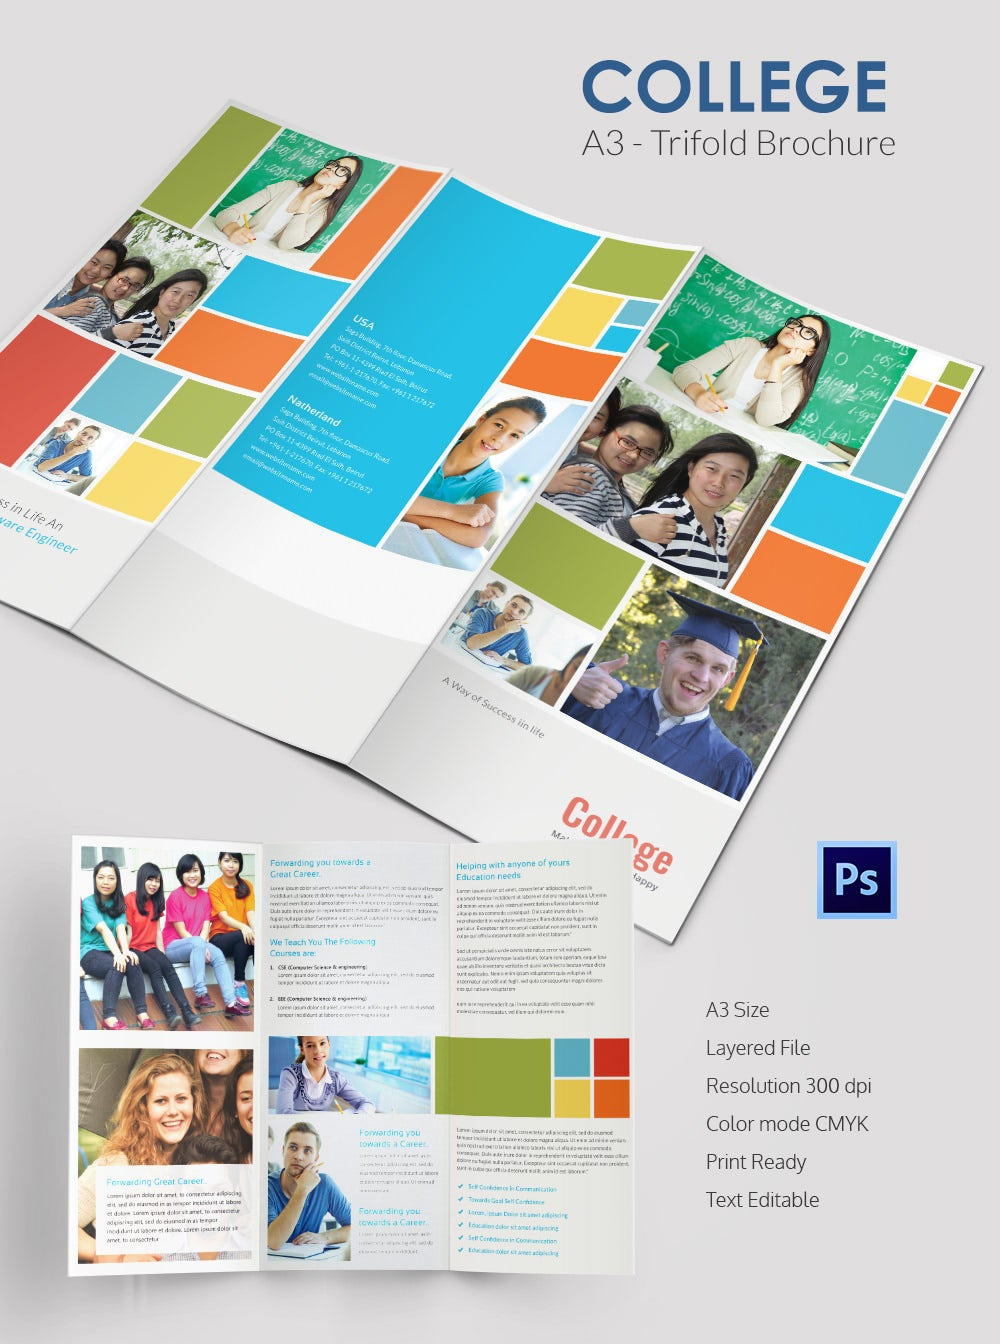 college brochure templates free download - college brochure template 34 free jpg psd indesign